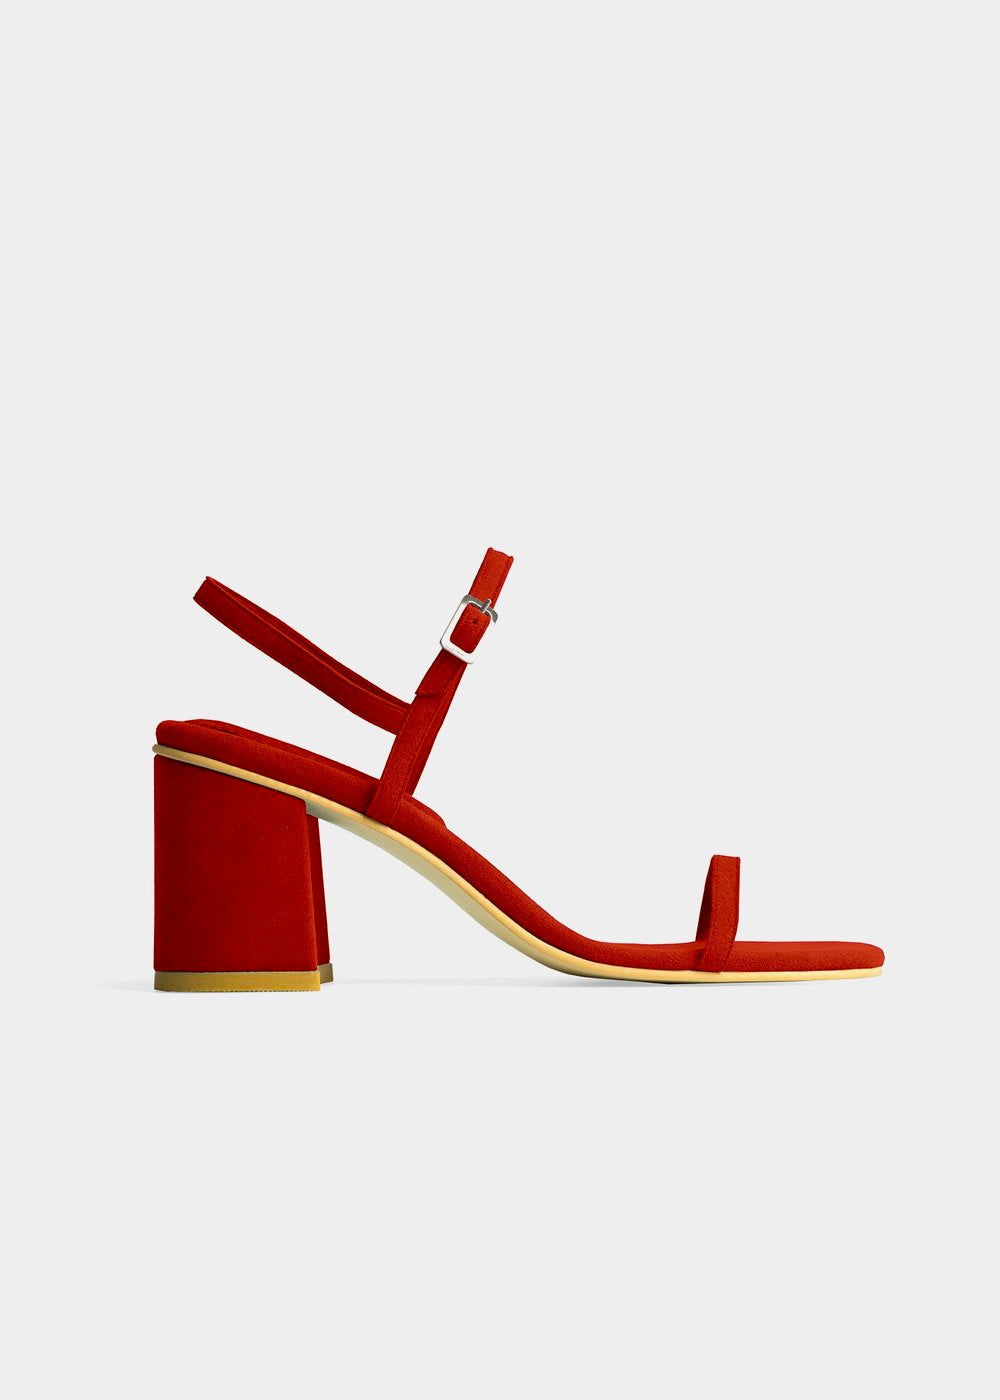 RAFA Simple Sandal in Ruby — Shop sustainable fashion and slow fashion at New Classics Studios